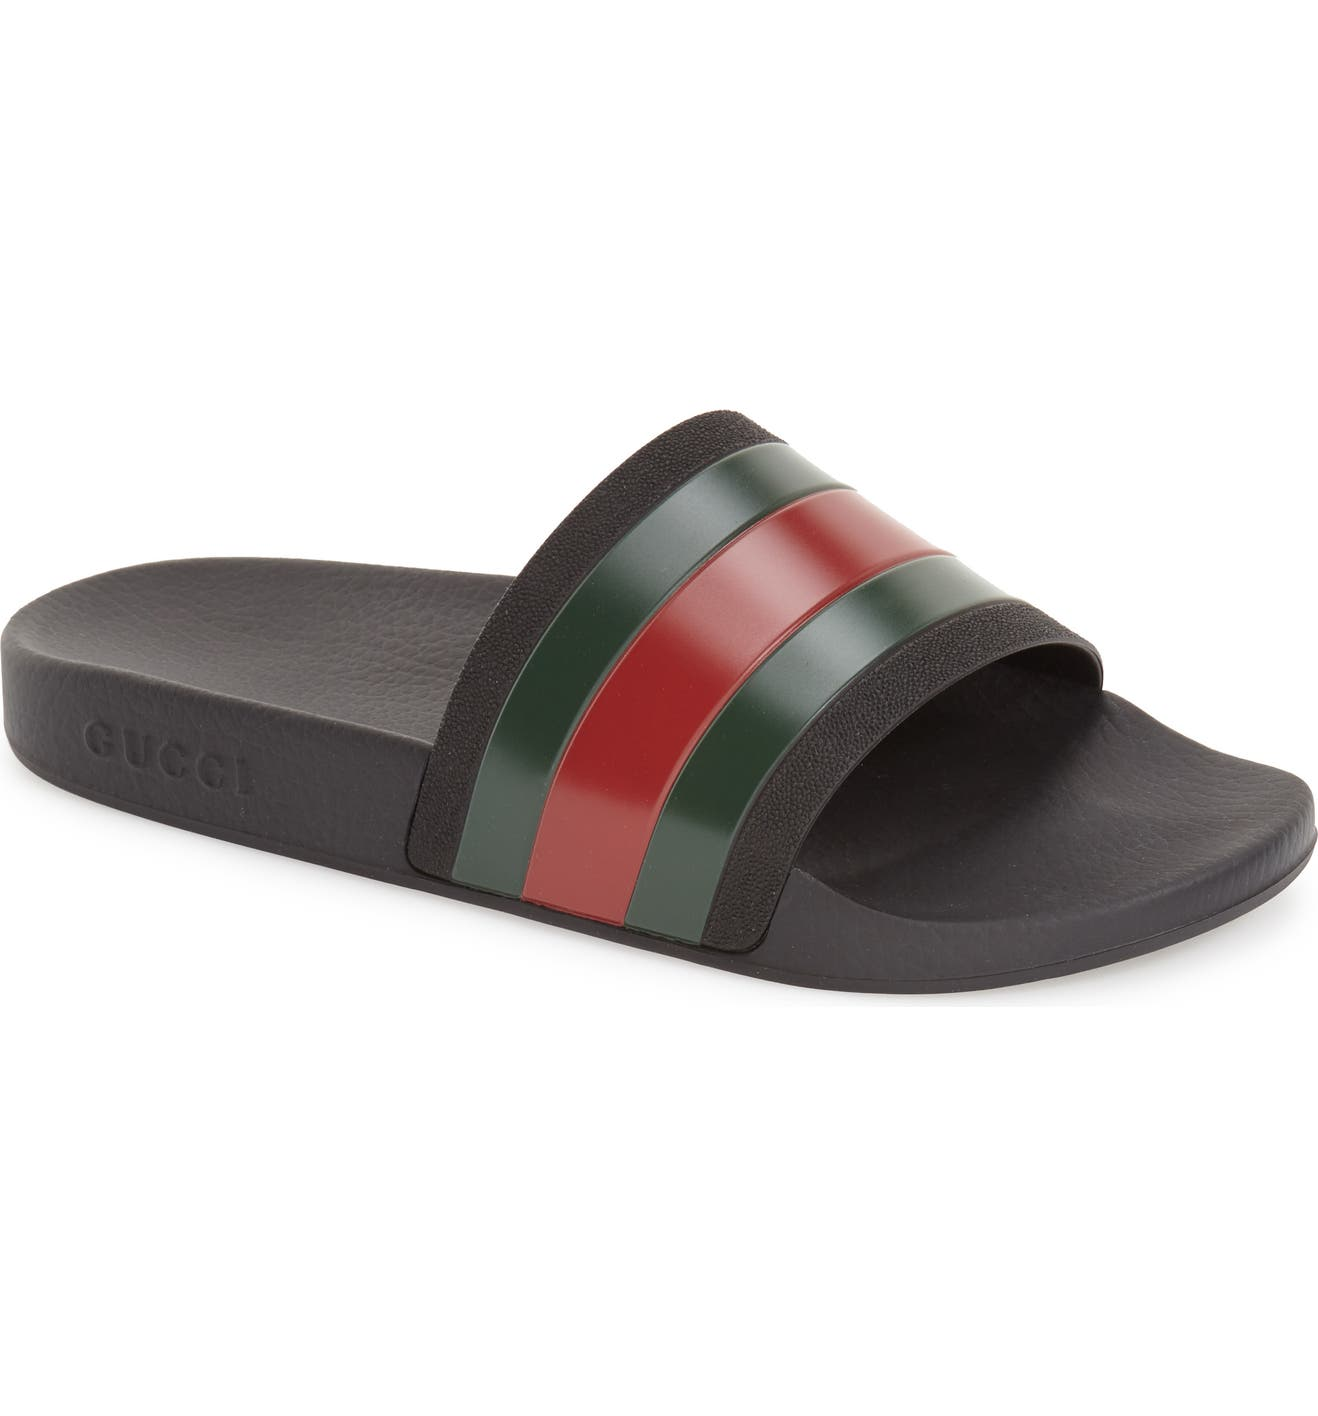 85a976642 Gucci Pursuit Rubber Slide Sandal (Men)